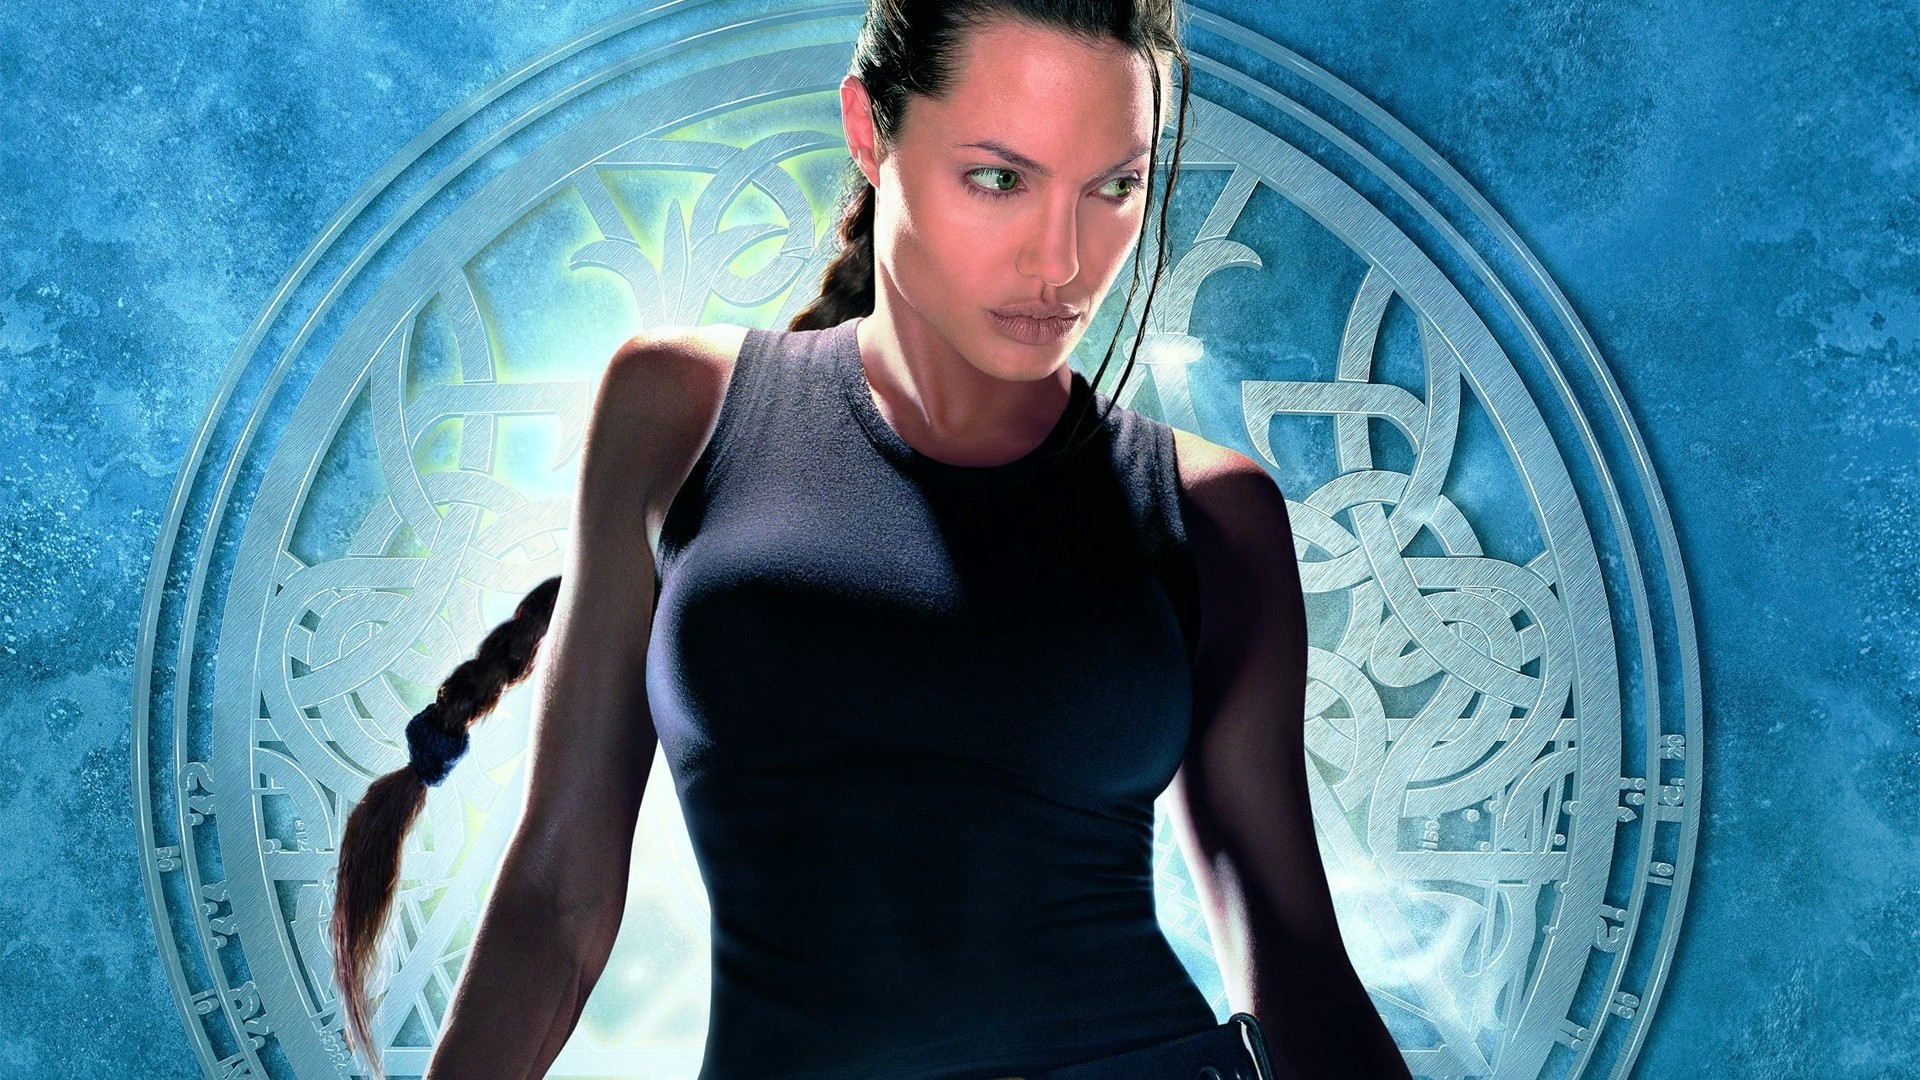 Angelina Jolie as Lara Croft 1769.65 Kb